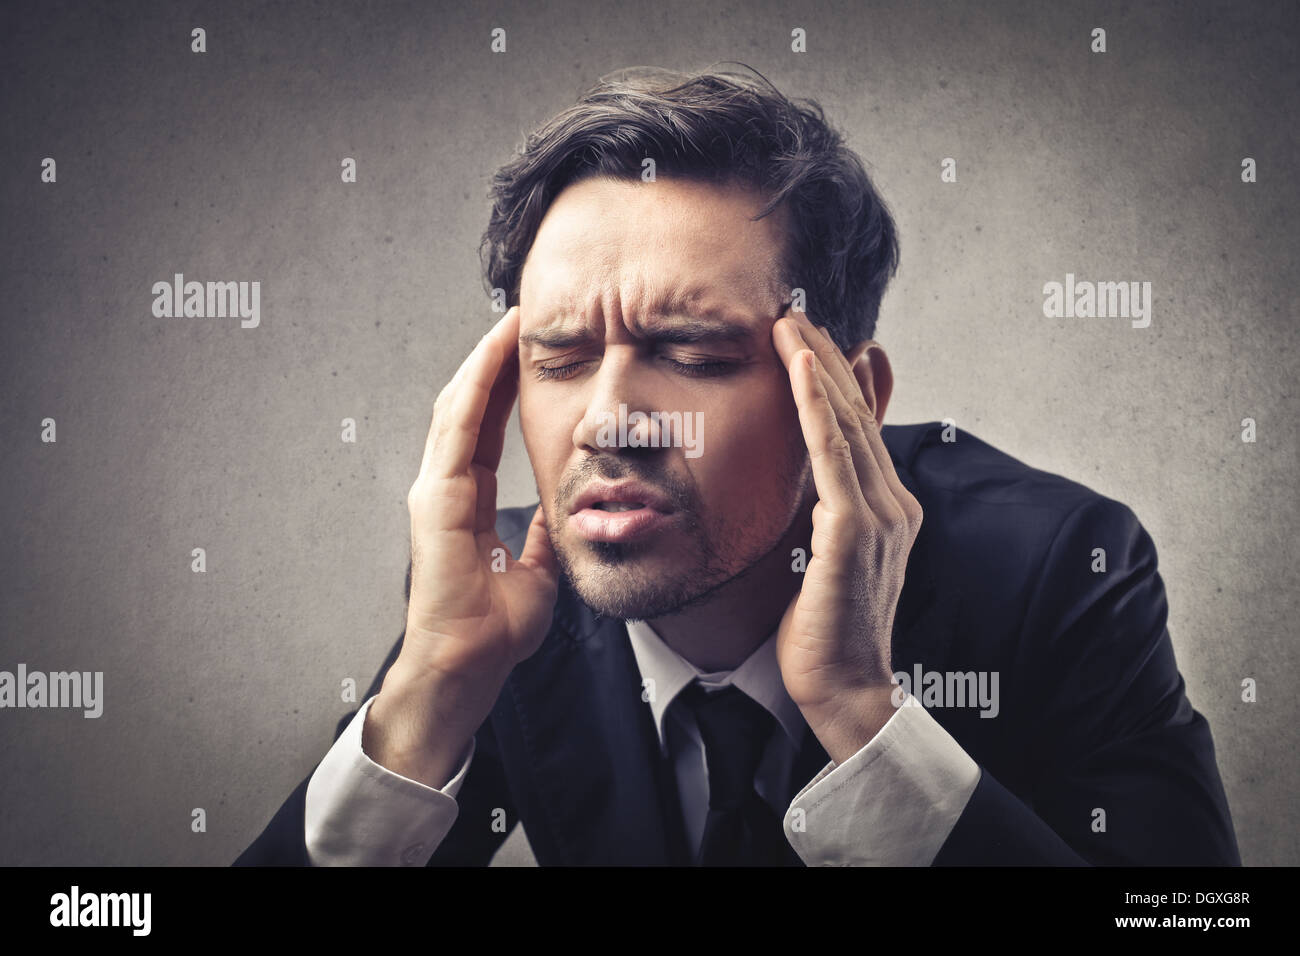 Stressed businessman with headache - Stock Image